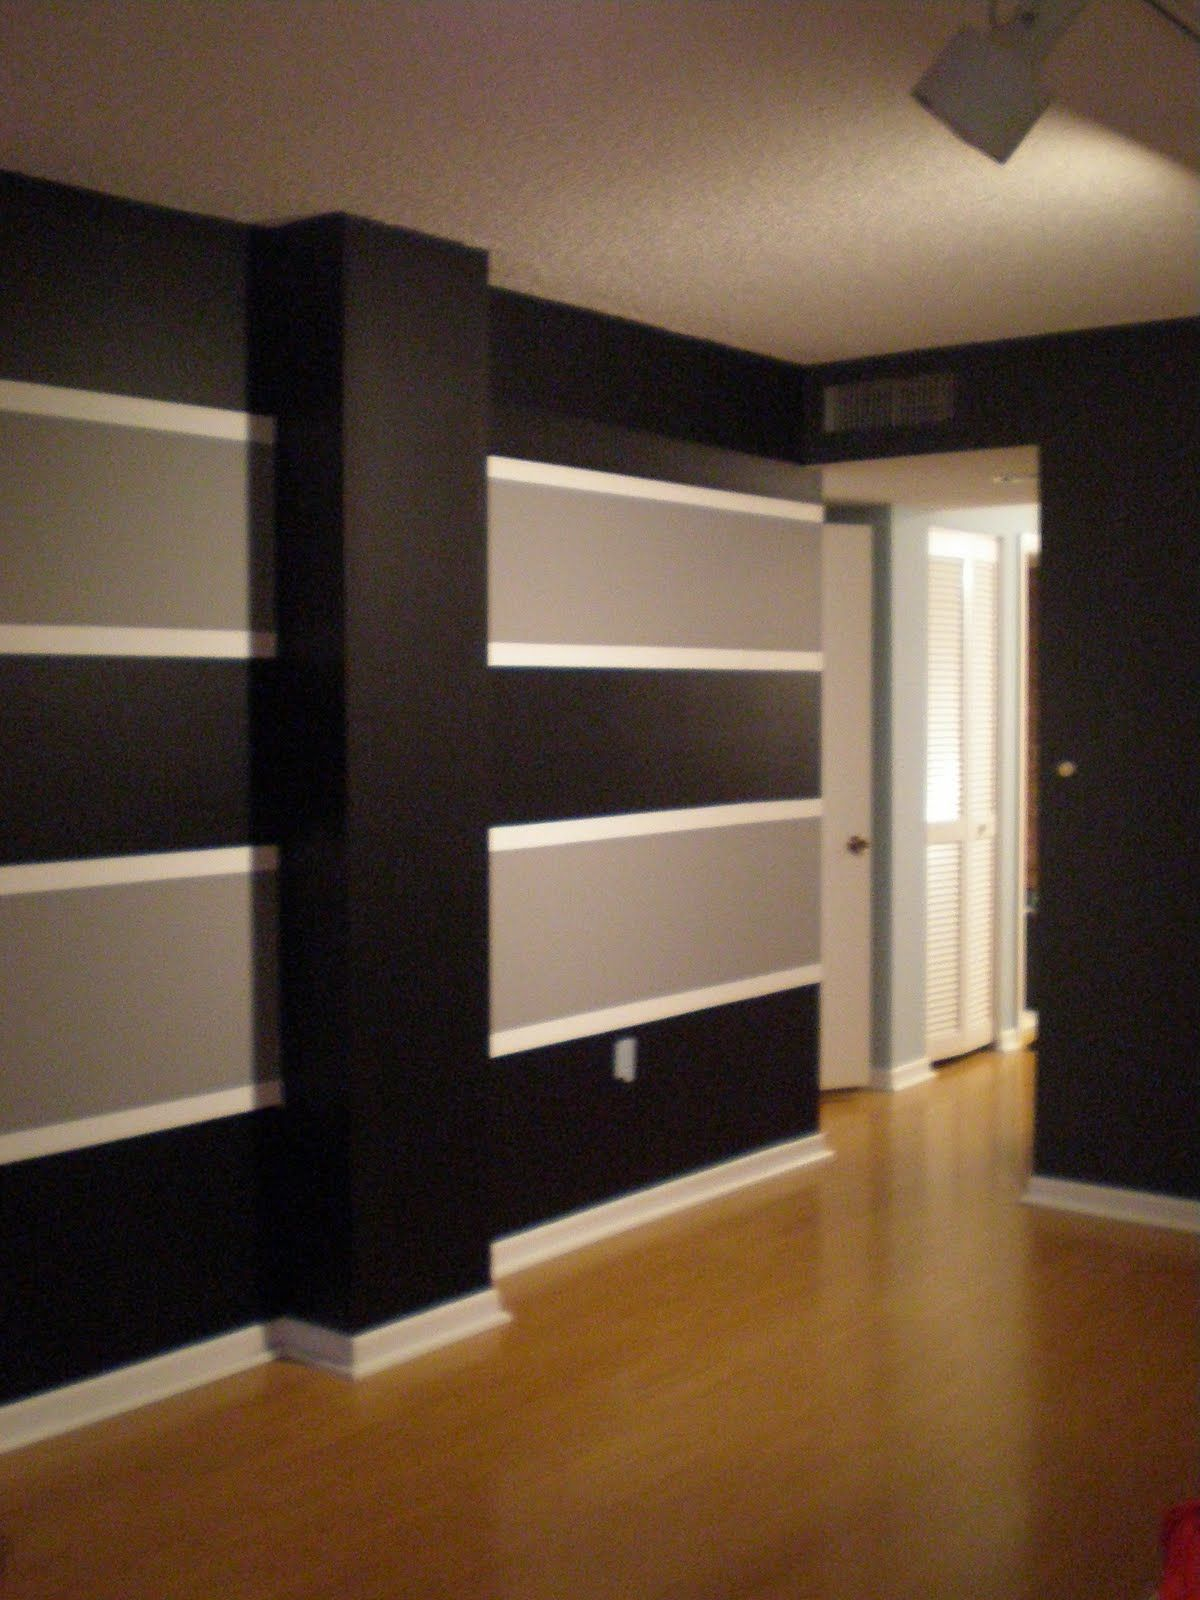 paint stripes on wall ideas painting stripes. Black Bedroom Furniture Sets. Home Design Ideas